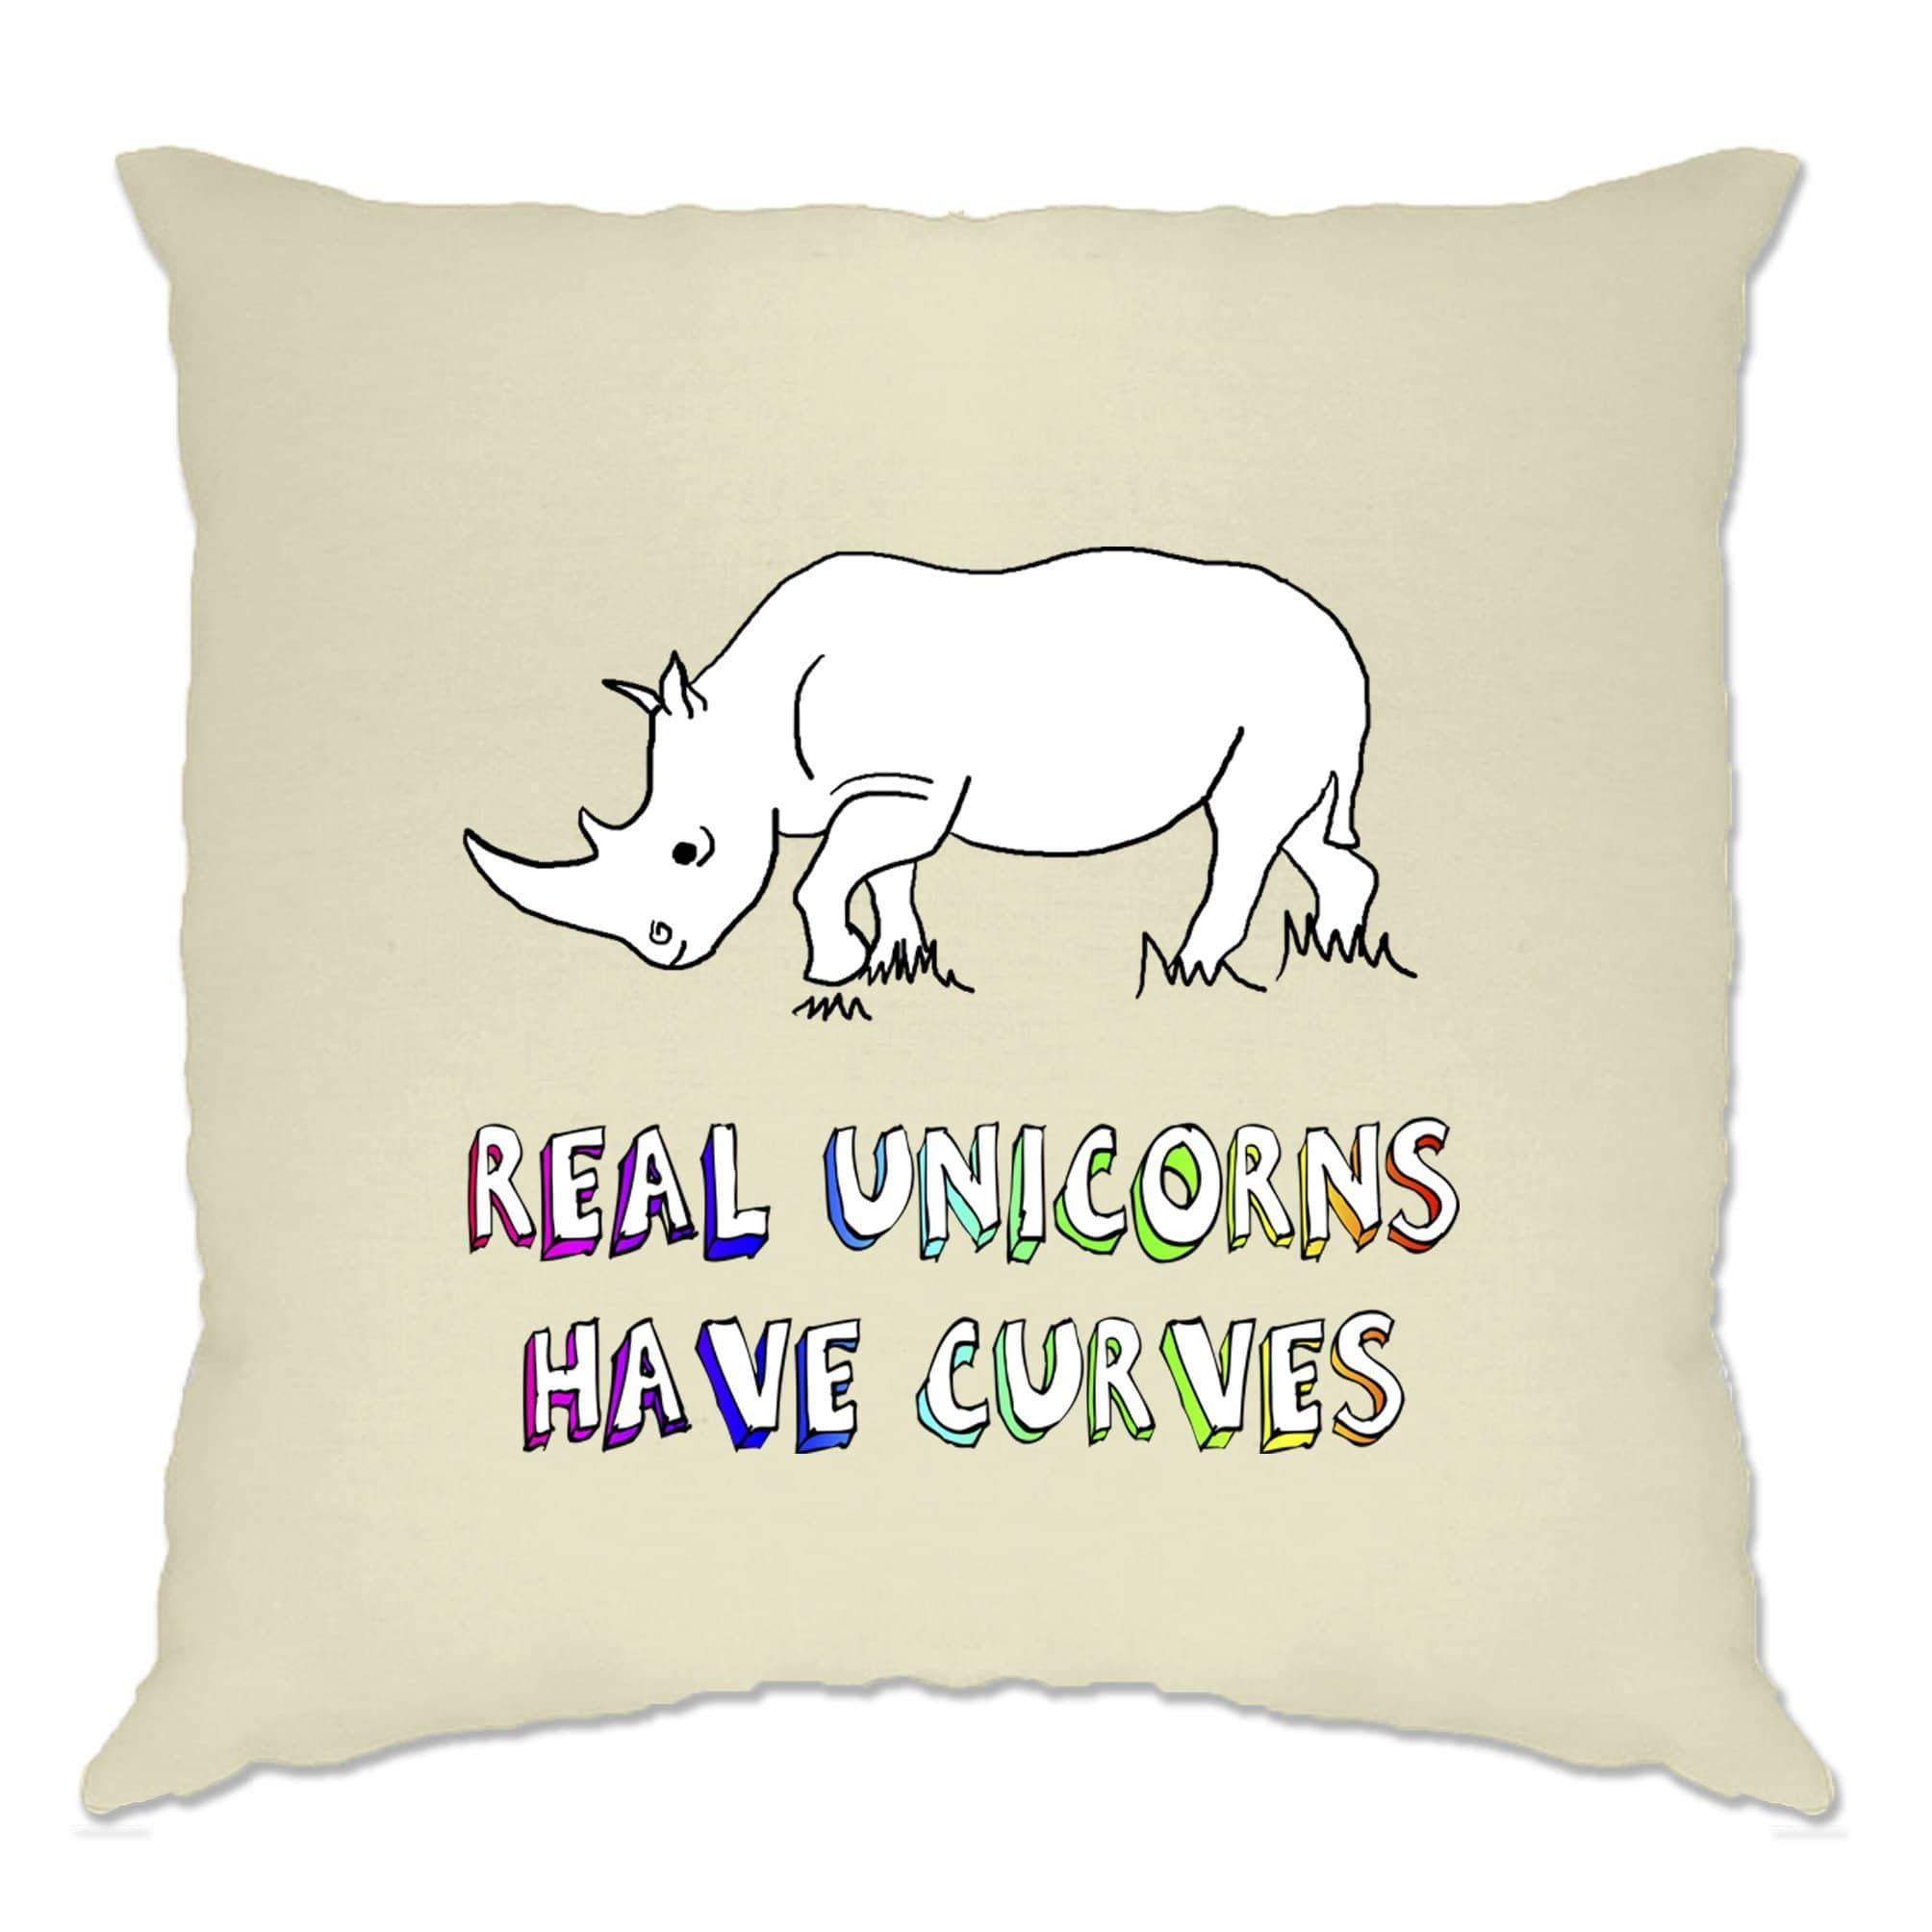 Novelty Cushion Cover Real Unicorns Have Curves